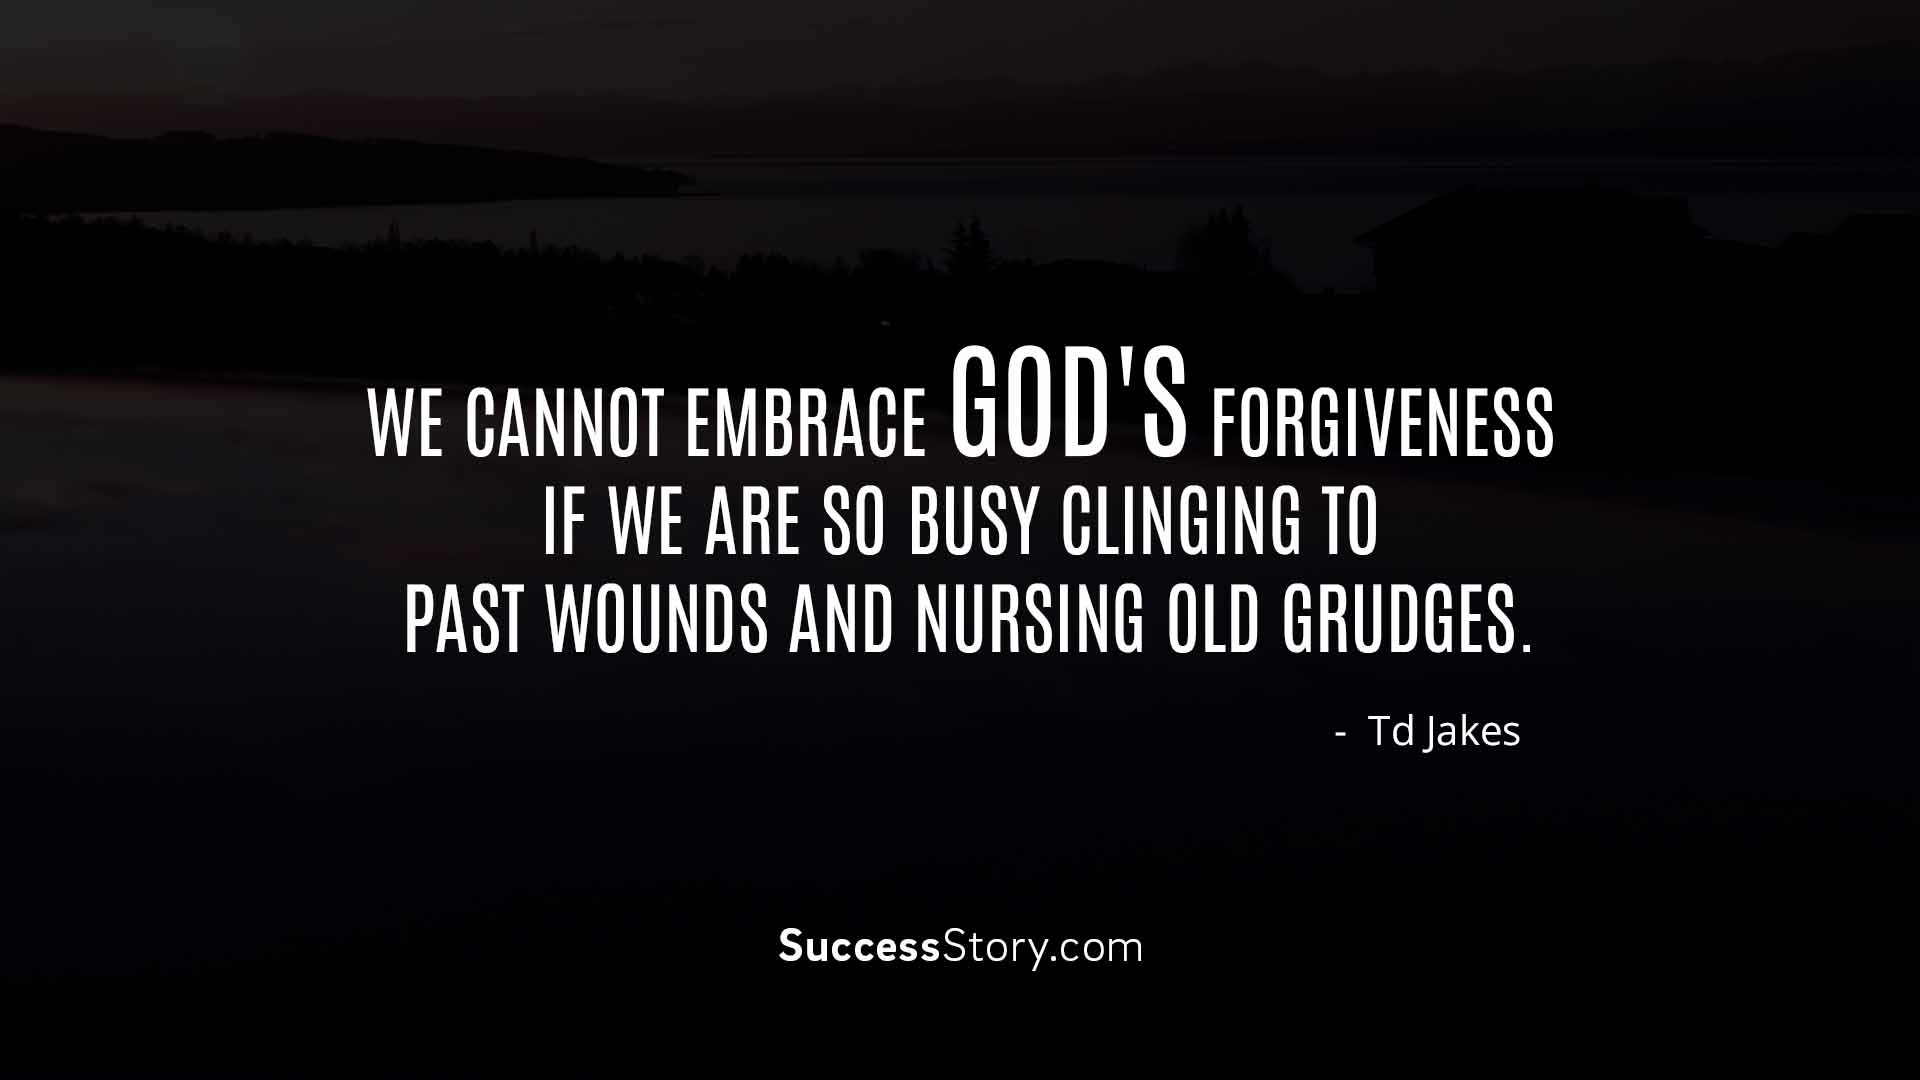 We cannot embrace